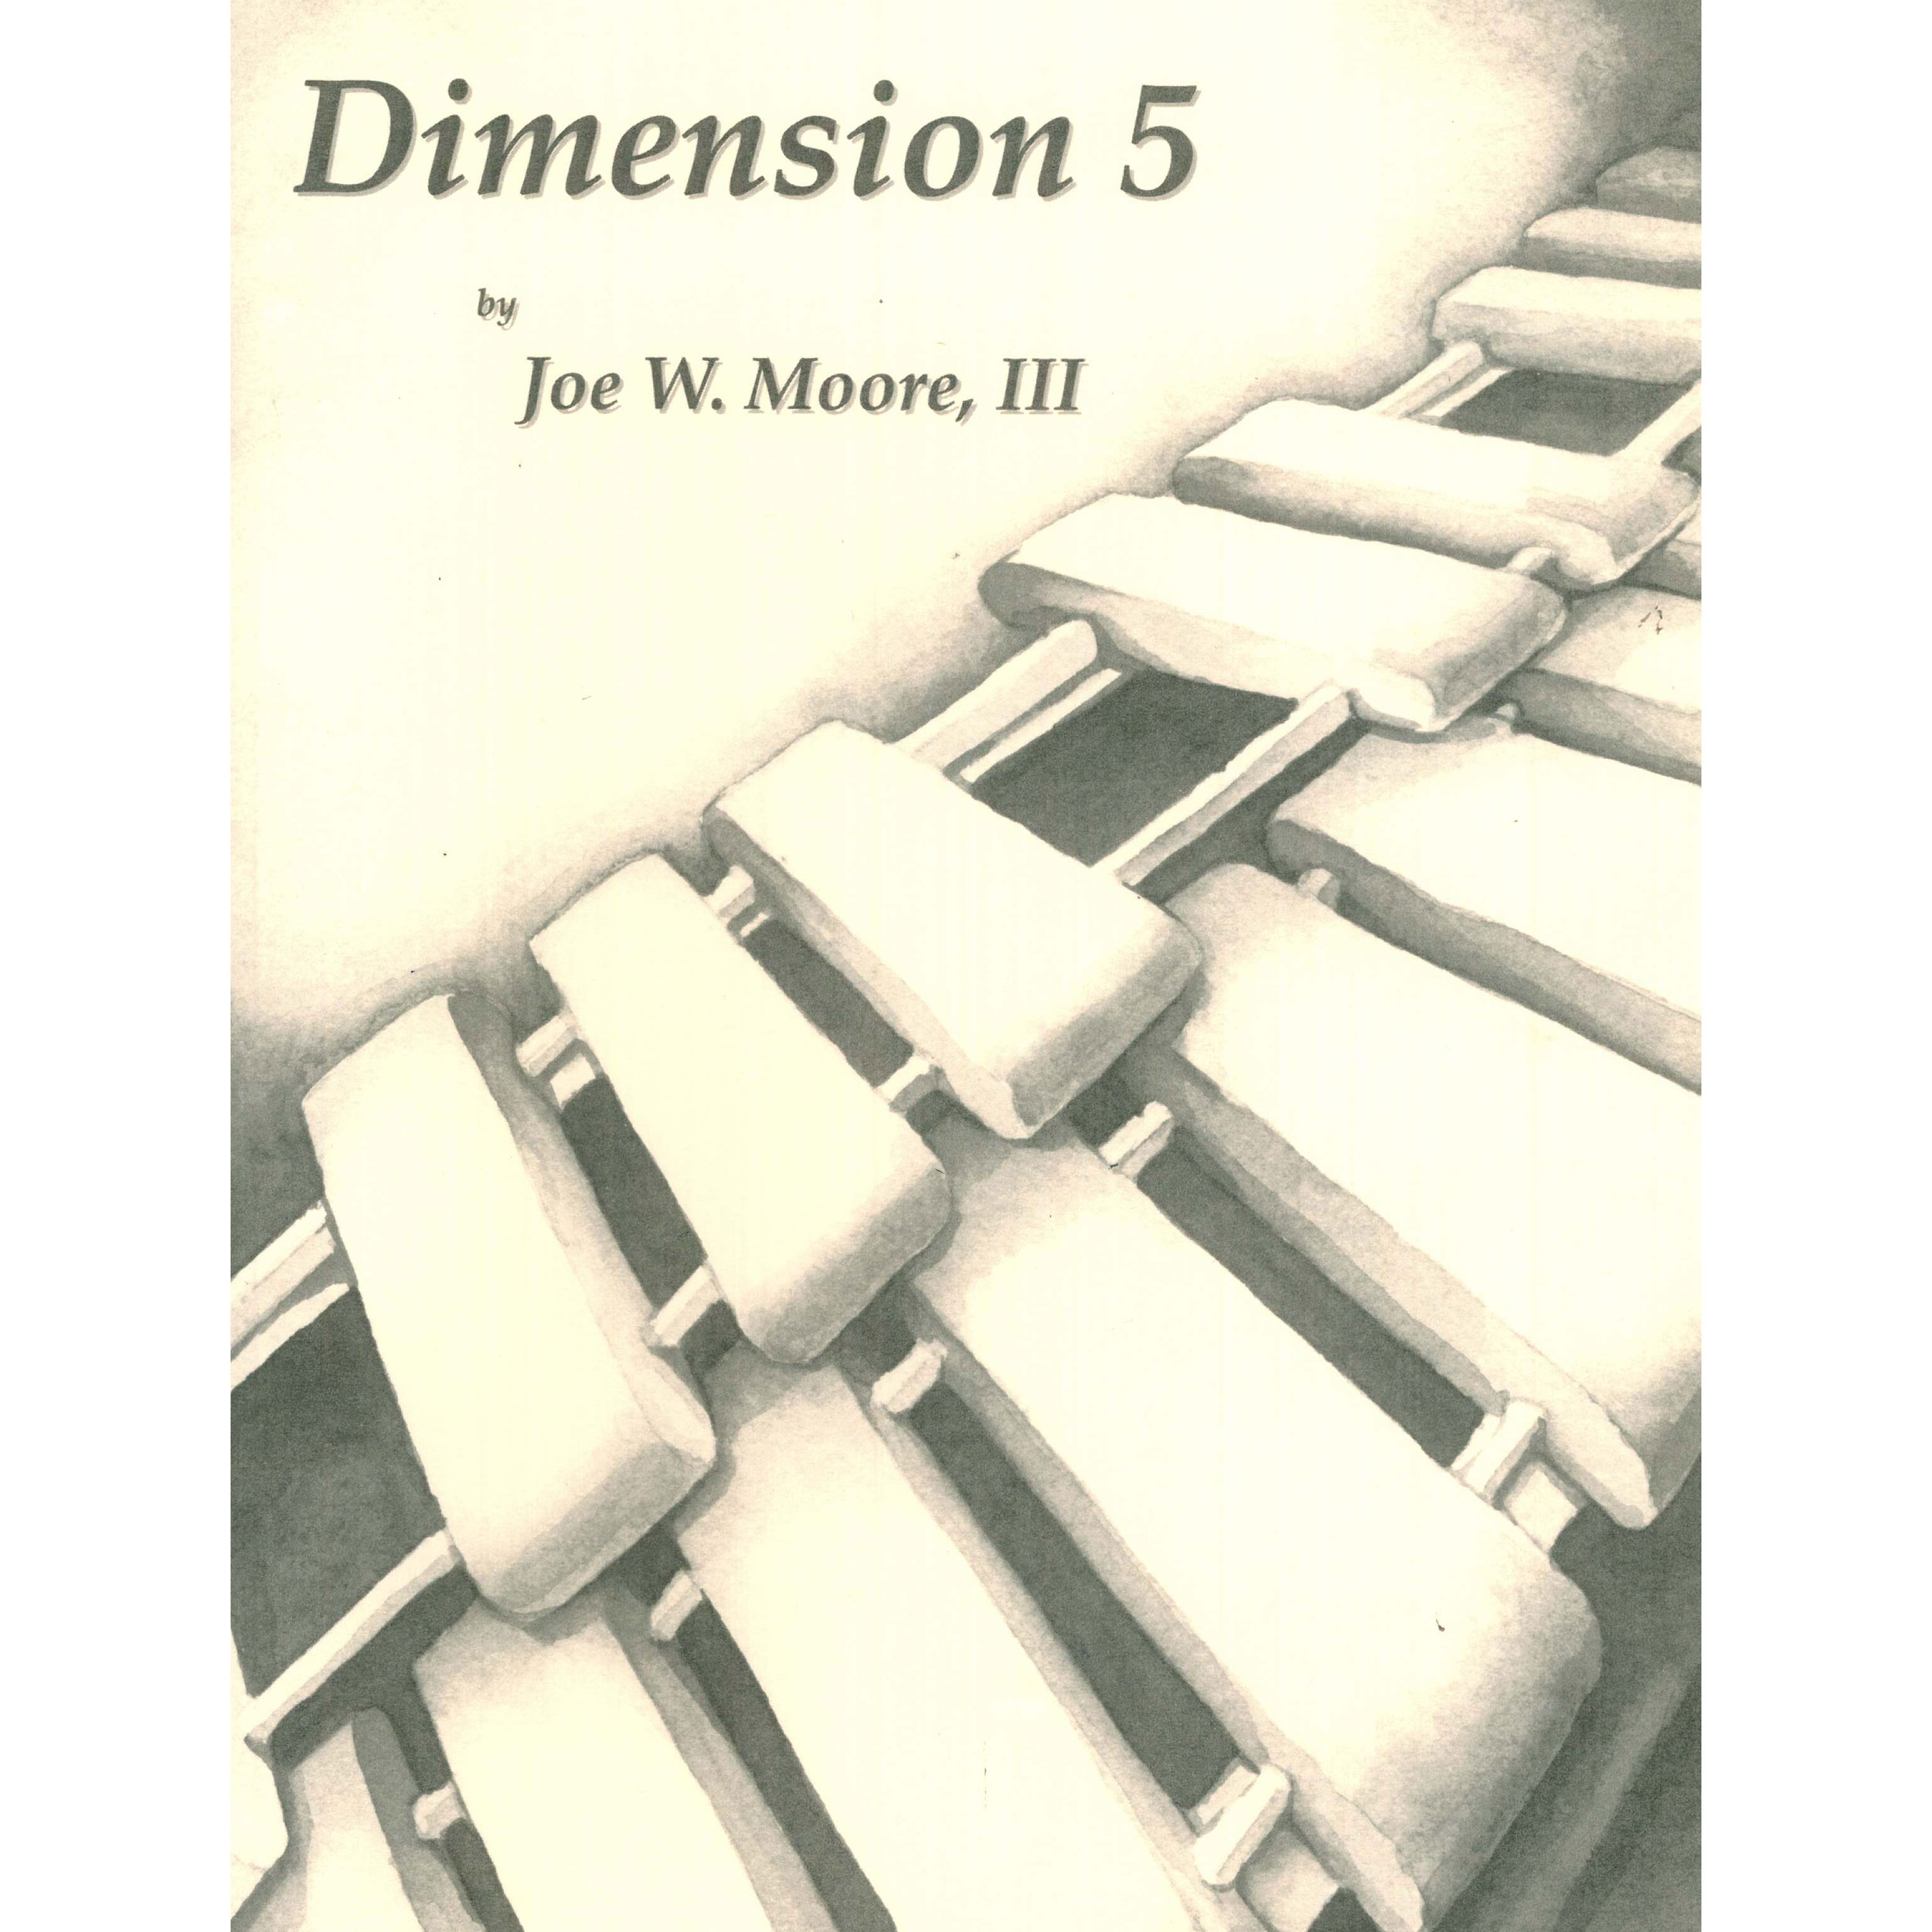 Dimensions 5 by Joe Moore III